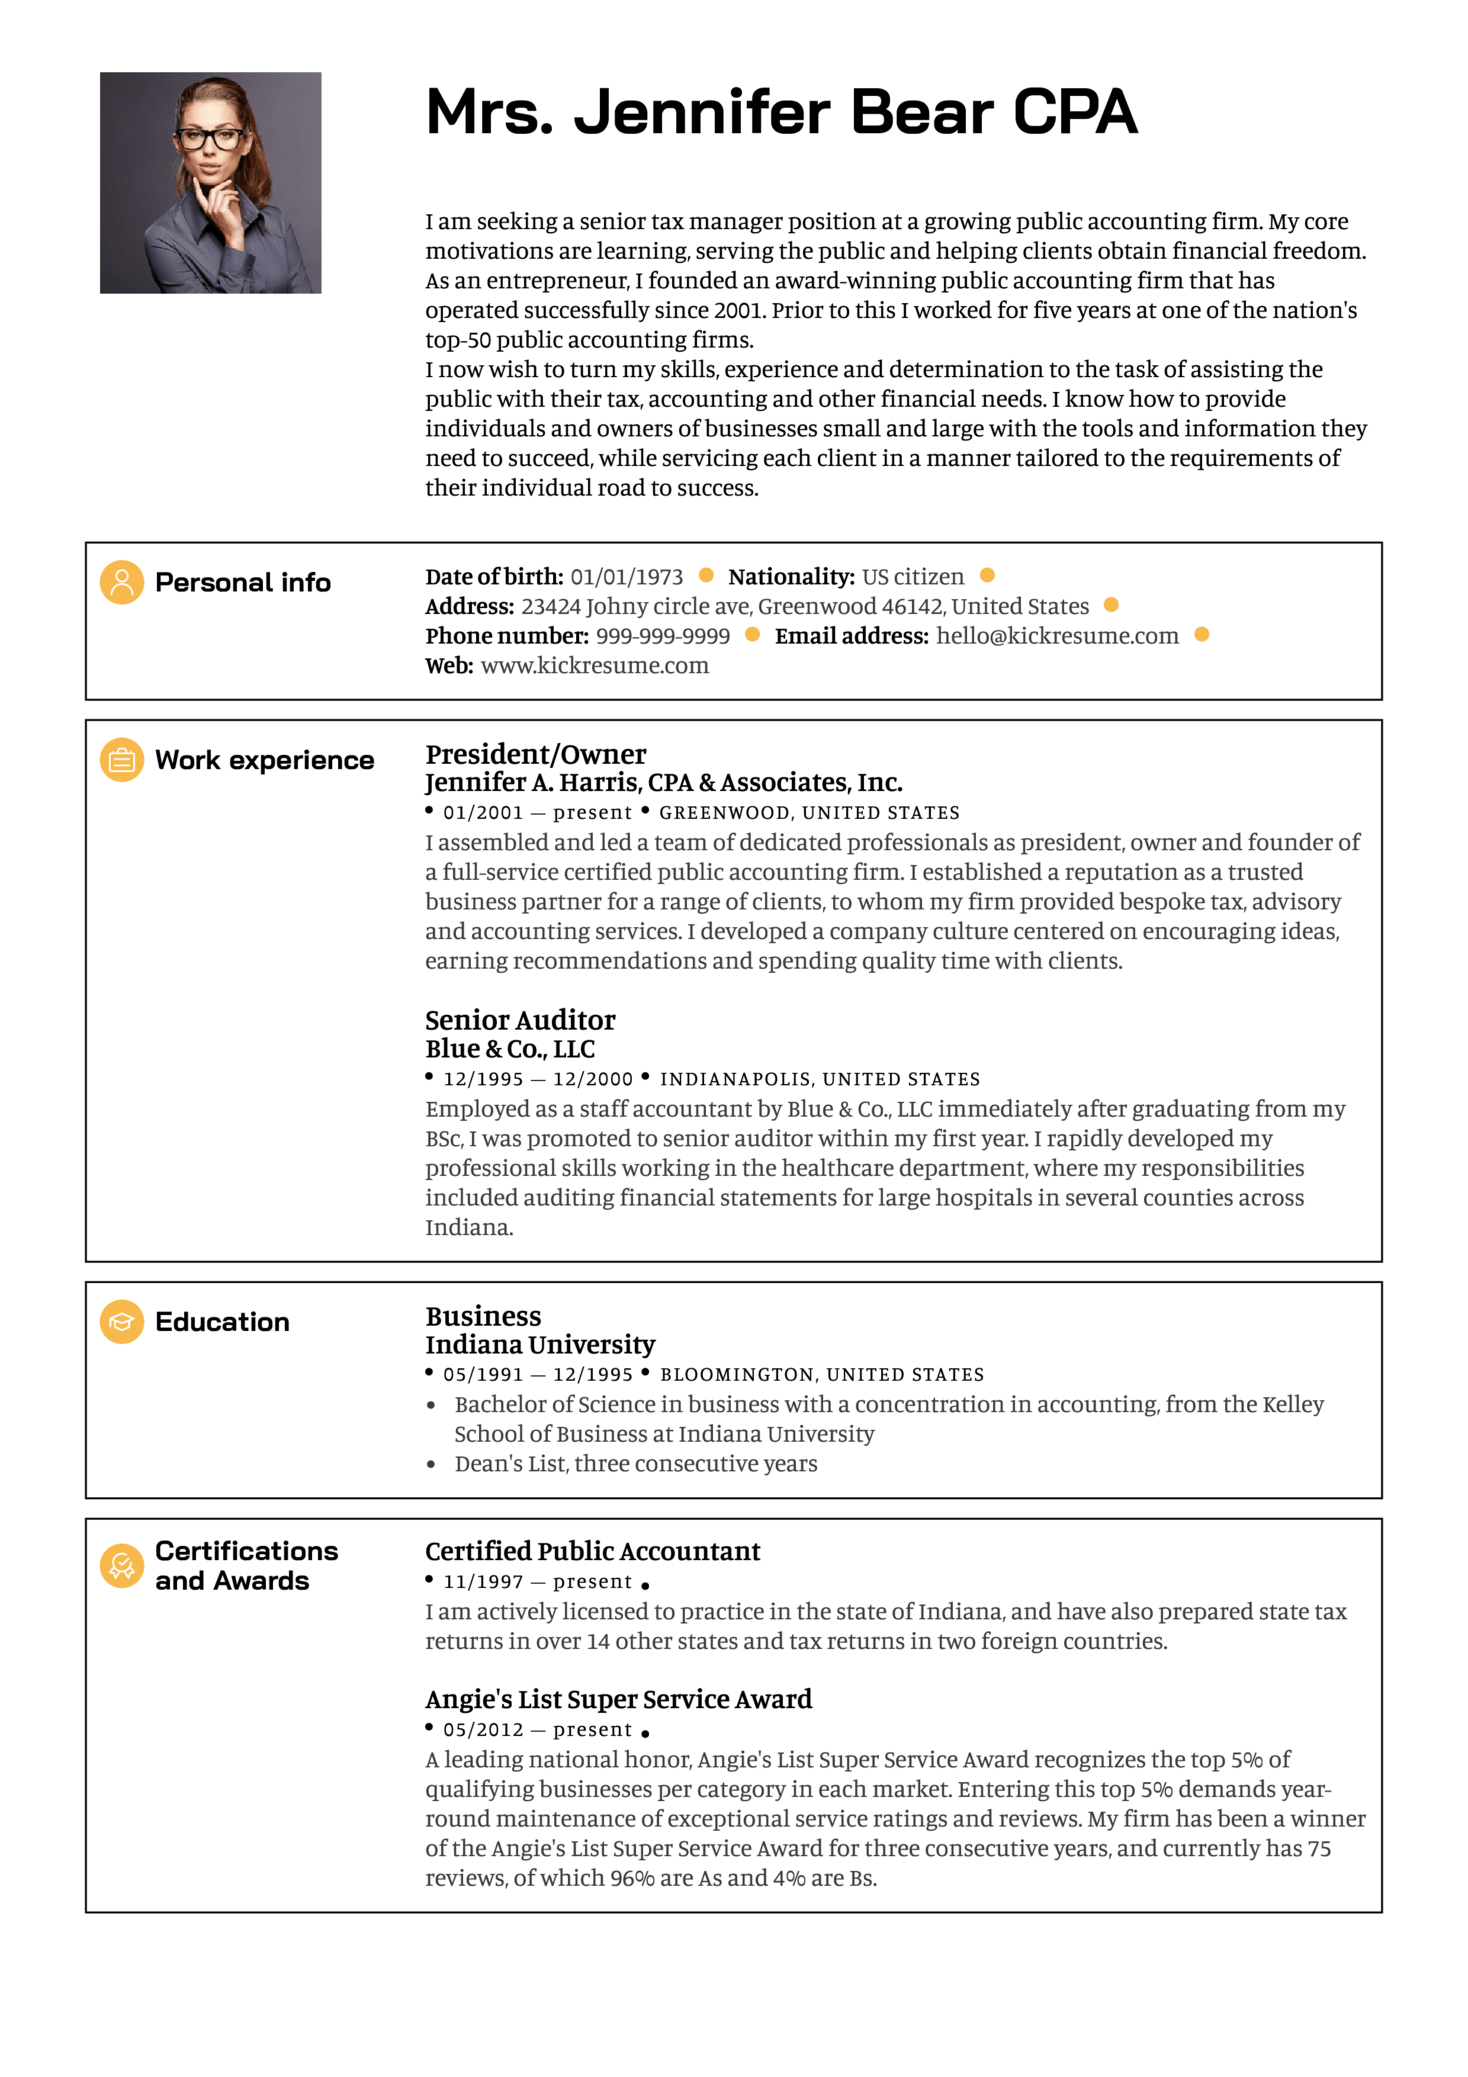 Senior manager resume sample | Resume samples | Career help center